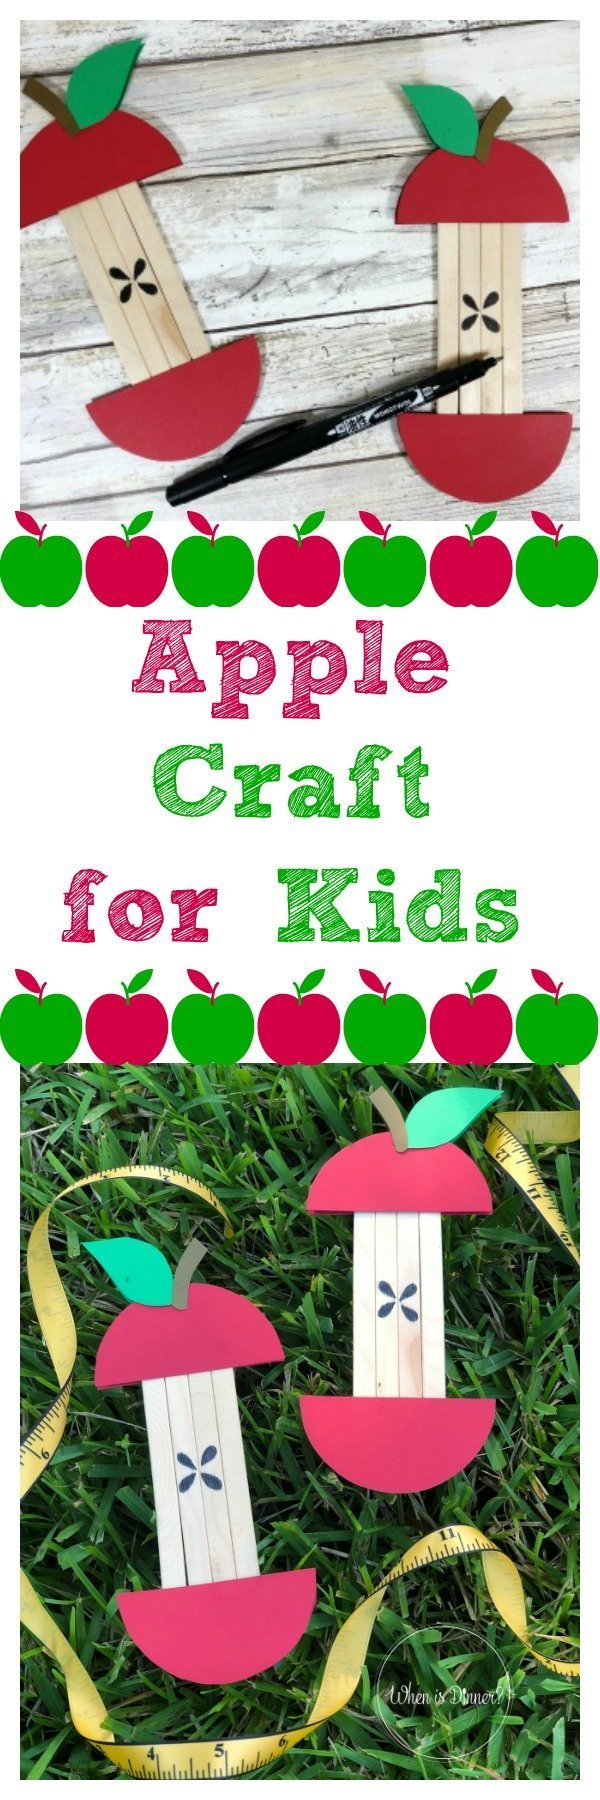 Apple Craft for Kids. Work on shapes, colors, cutting and counting with this simple Apple craft for kids, created from wooden craft sticks.